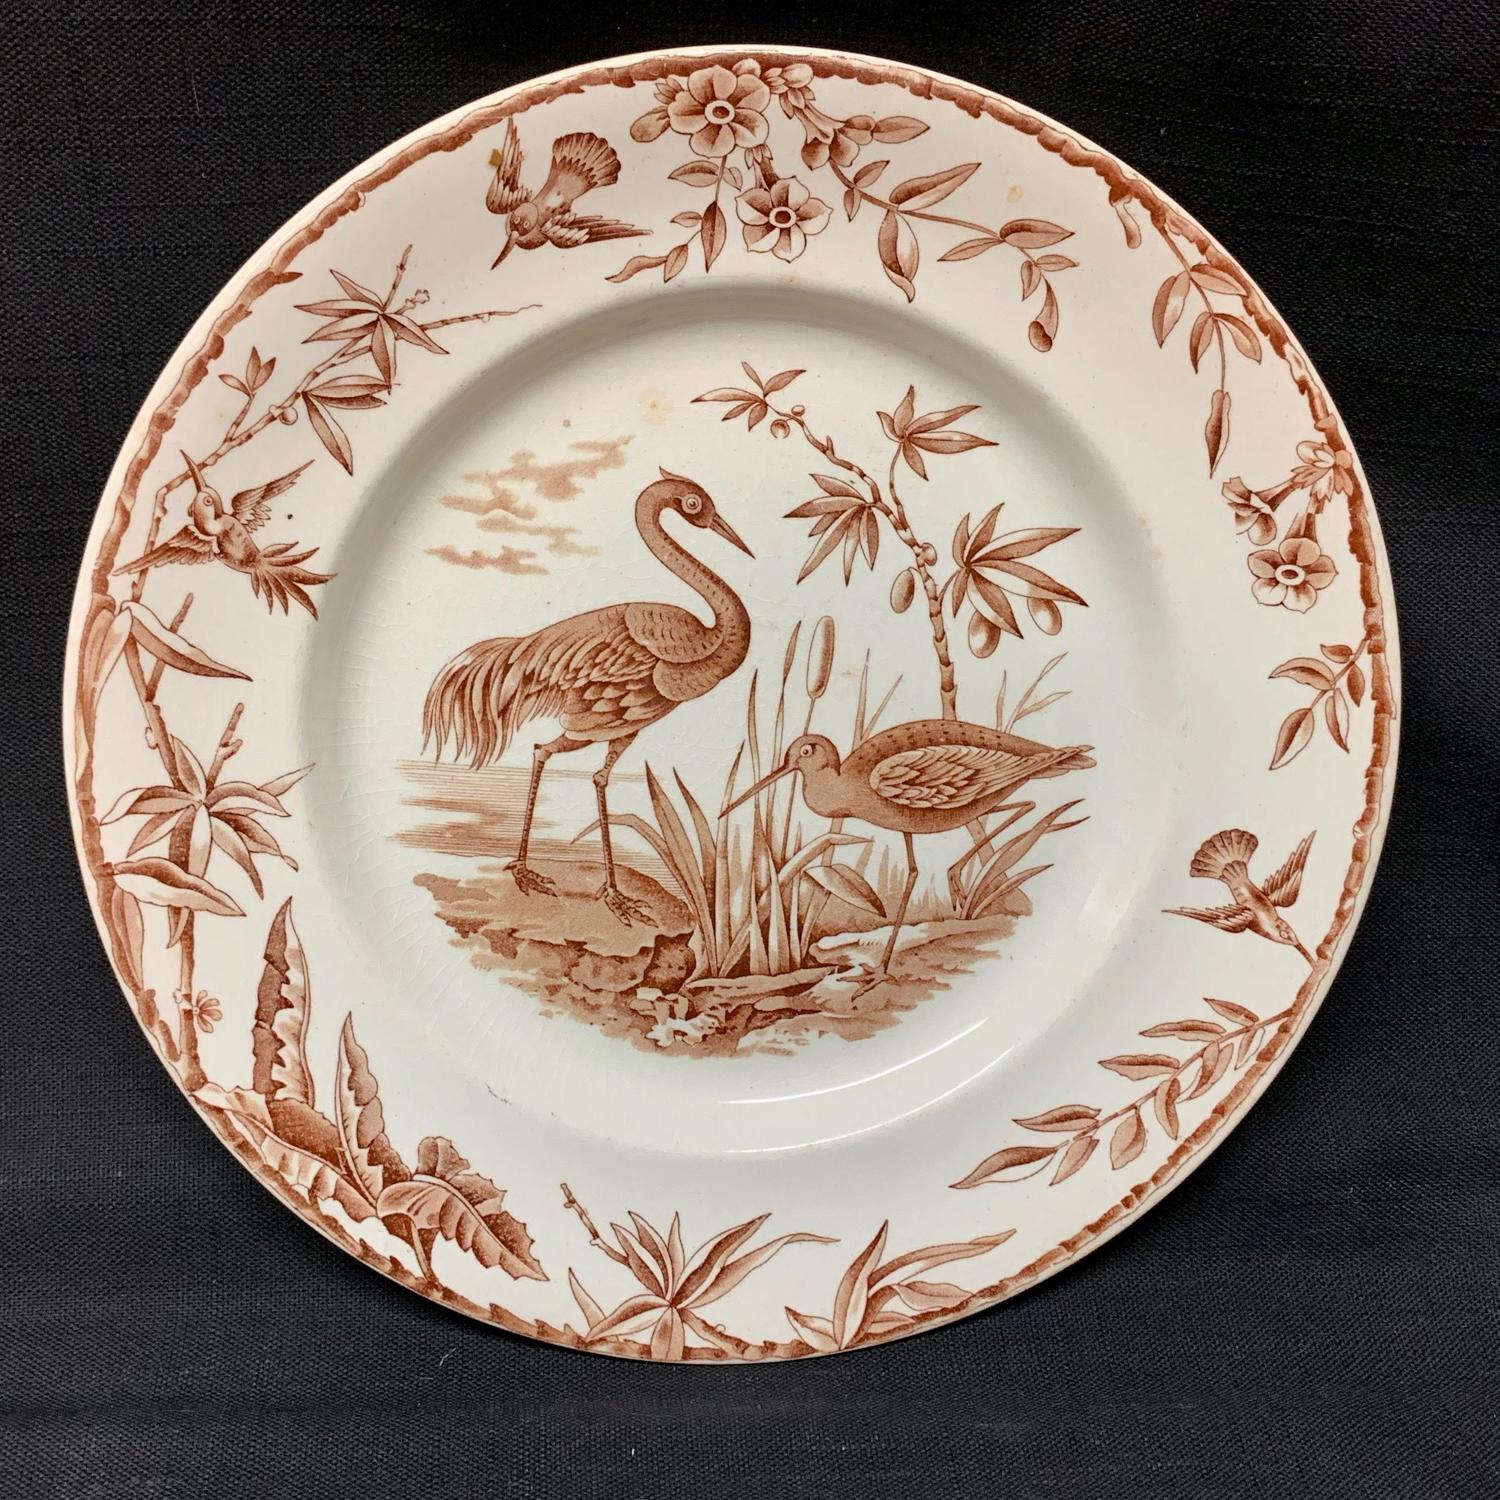 Antique Brown Transferware Plate ~ Outrageous Birds INDUS 1885